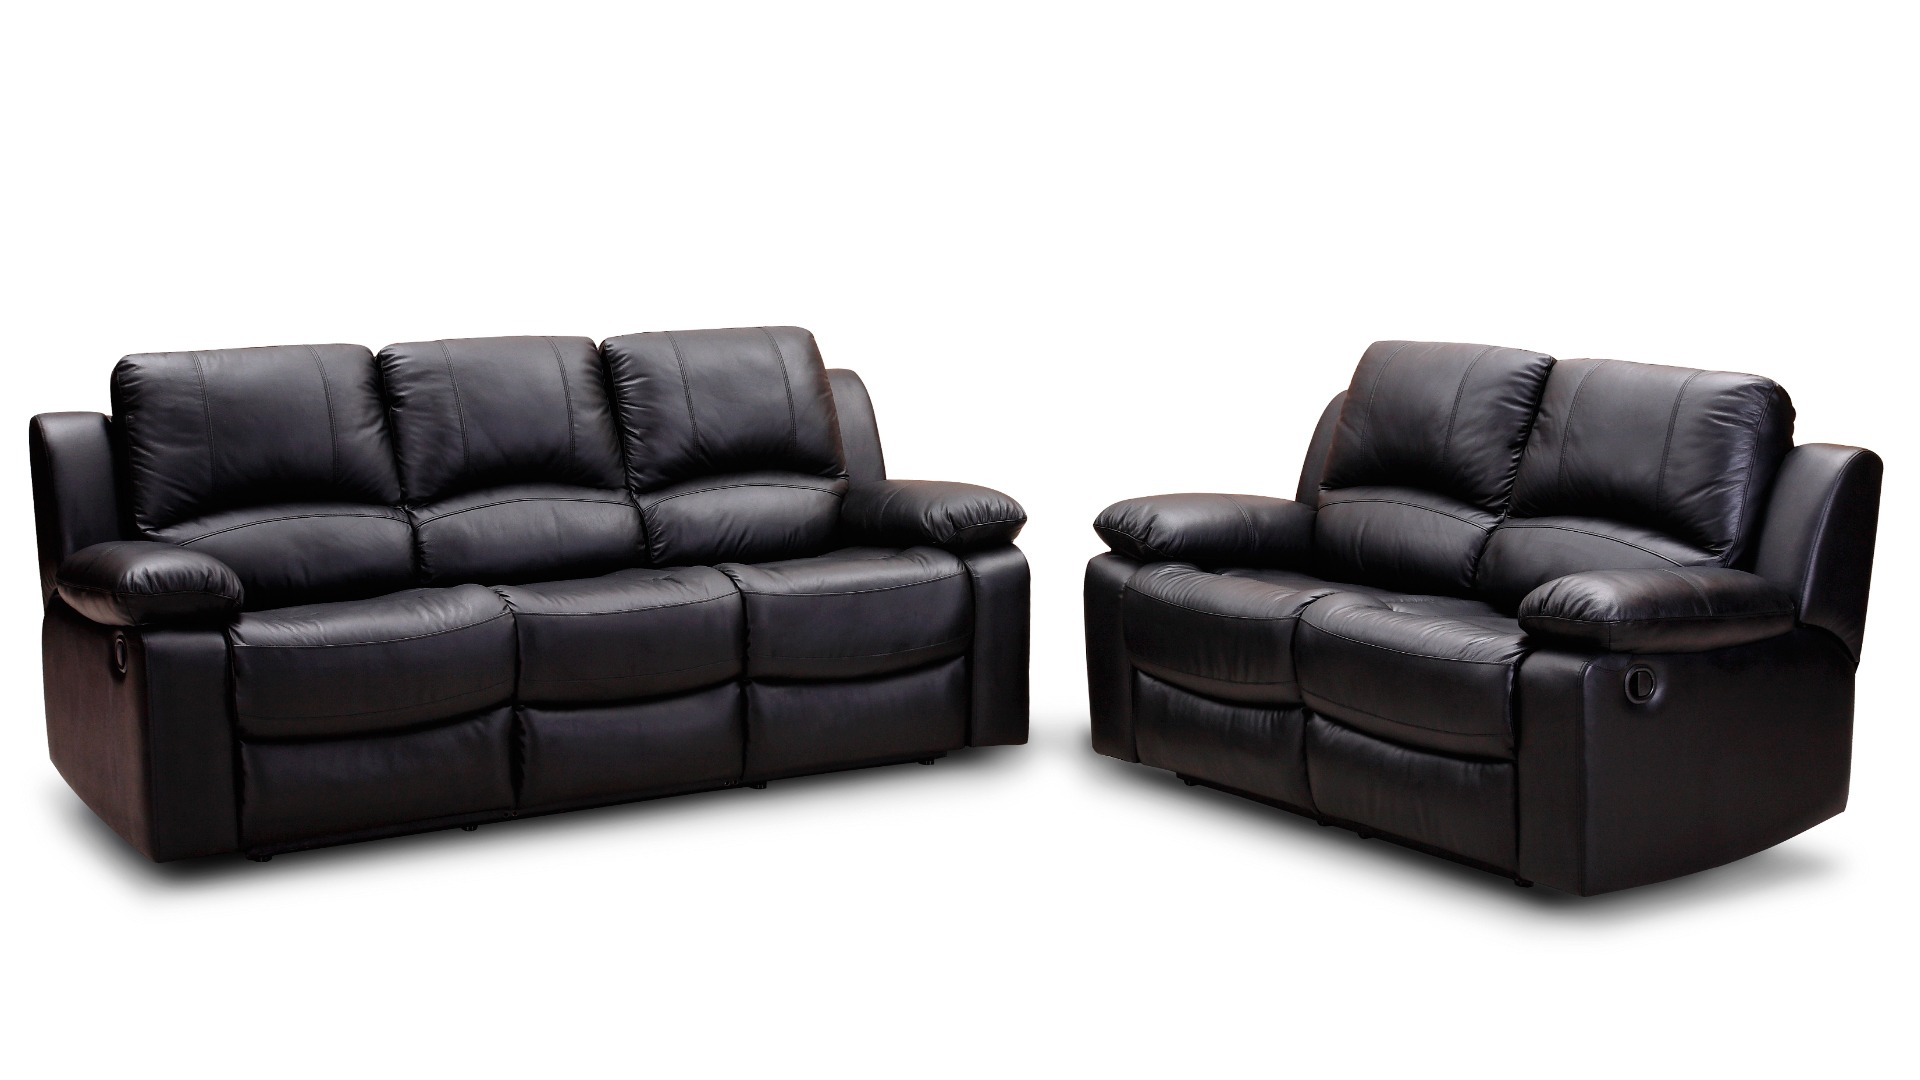 Sofa Set Images Free Download 500 Amazing Sofa Photos Pexels Free Stock Photos